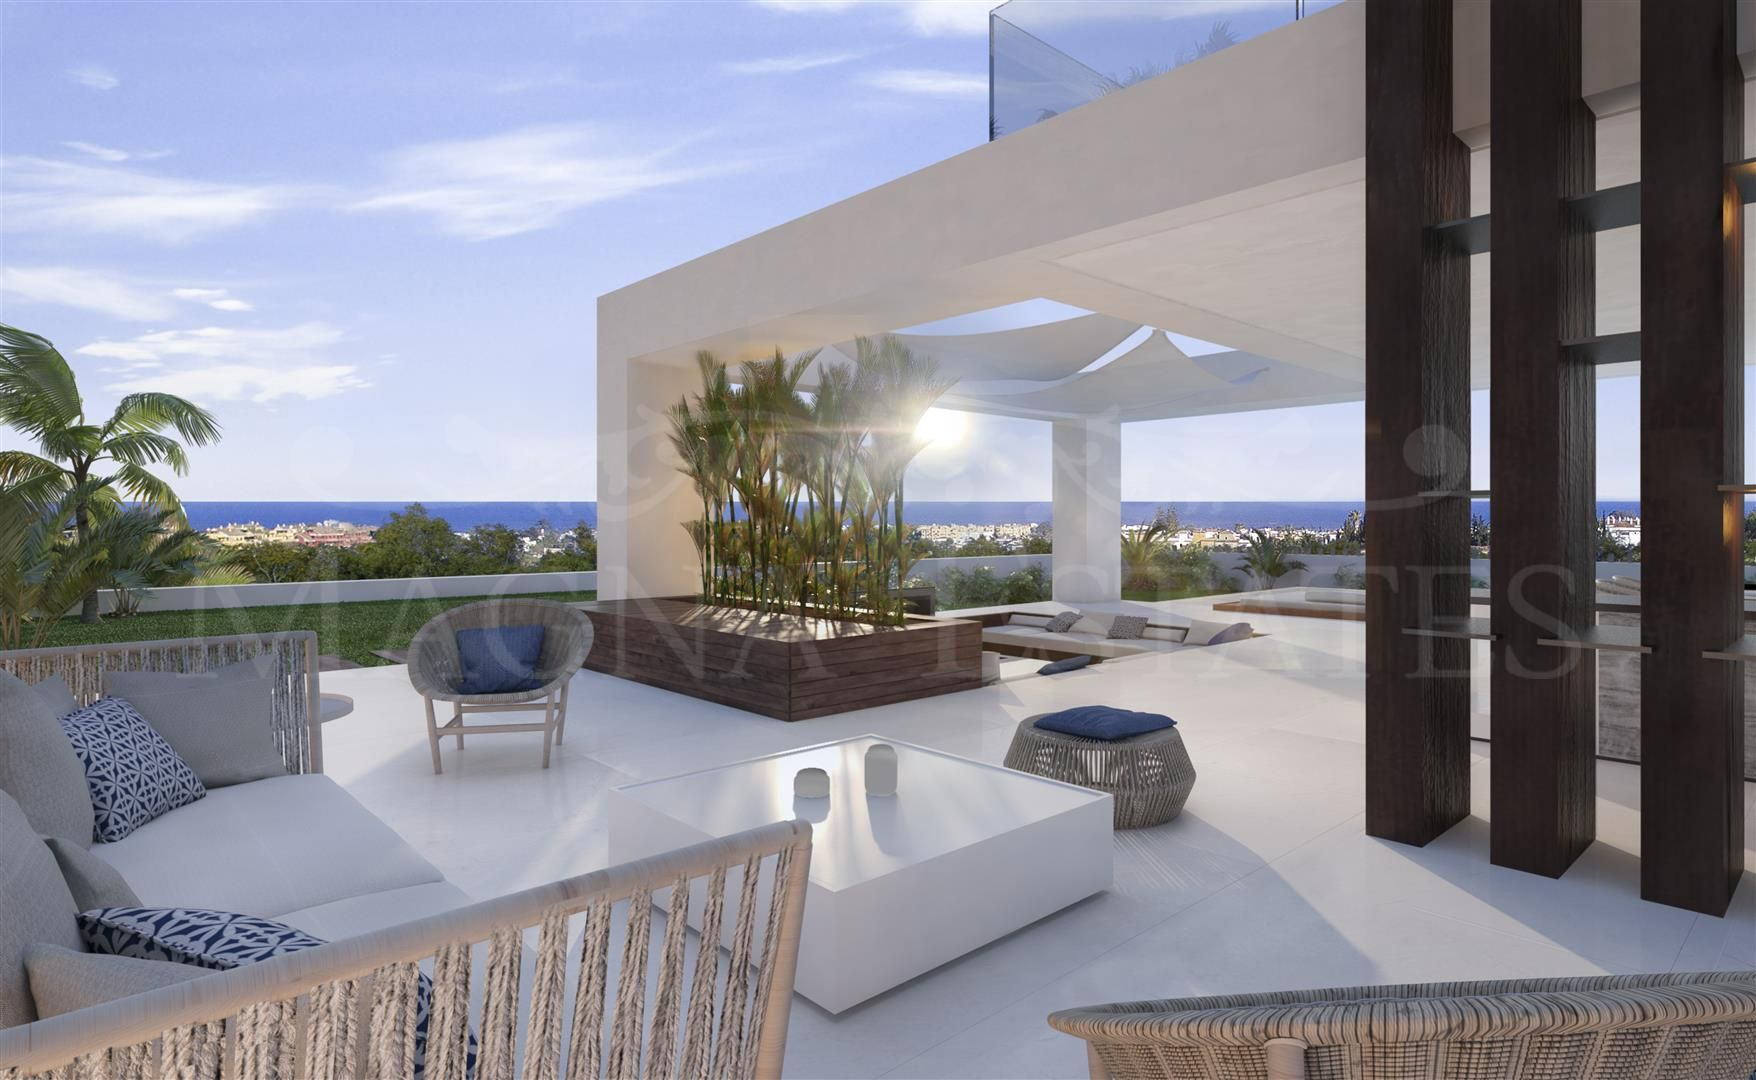 Project of contemporary design villas in Cancelada